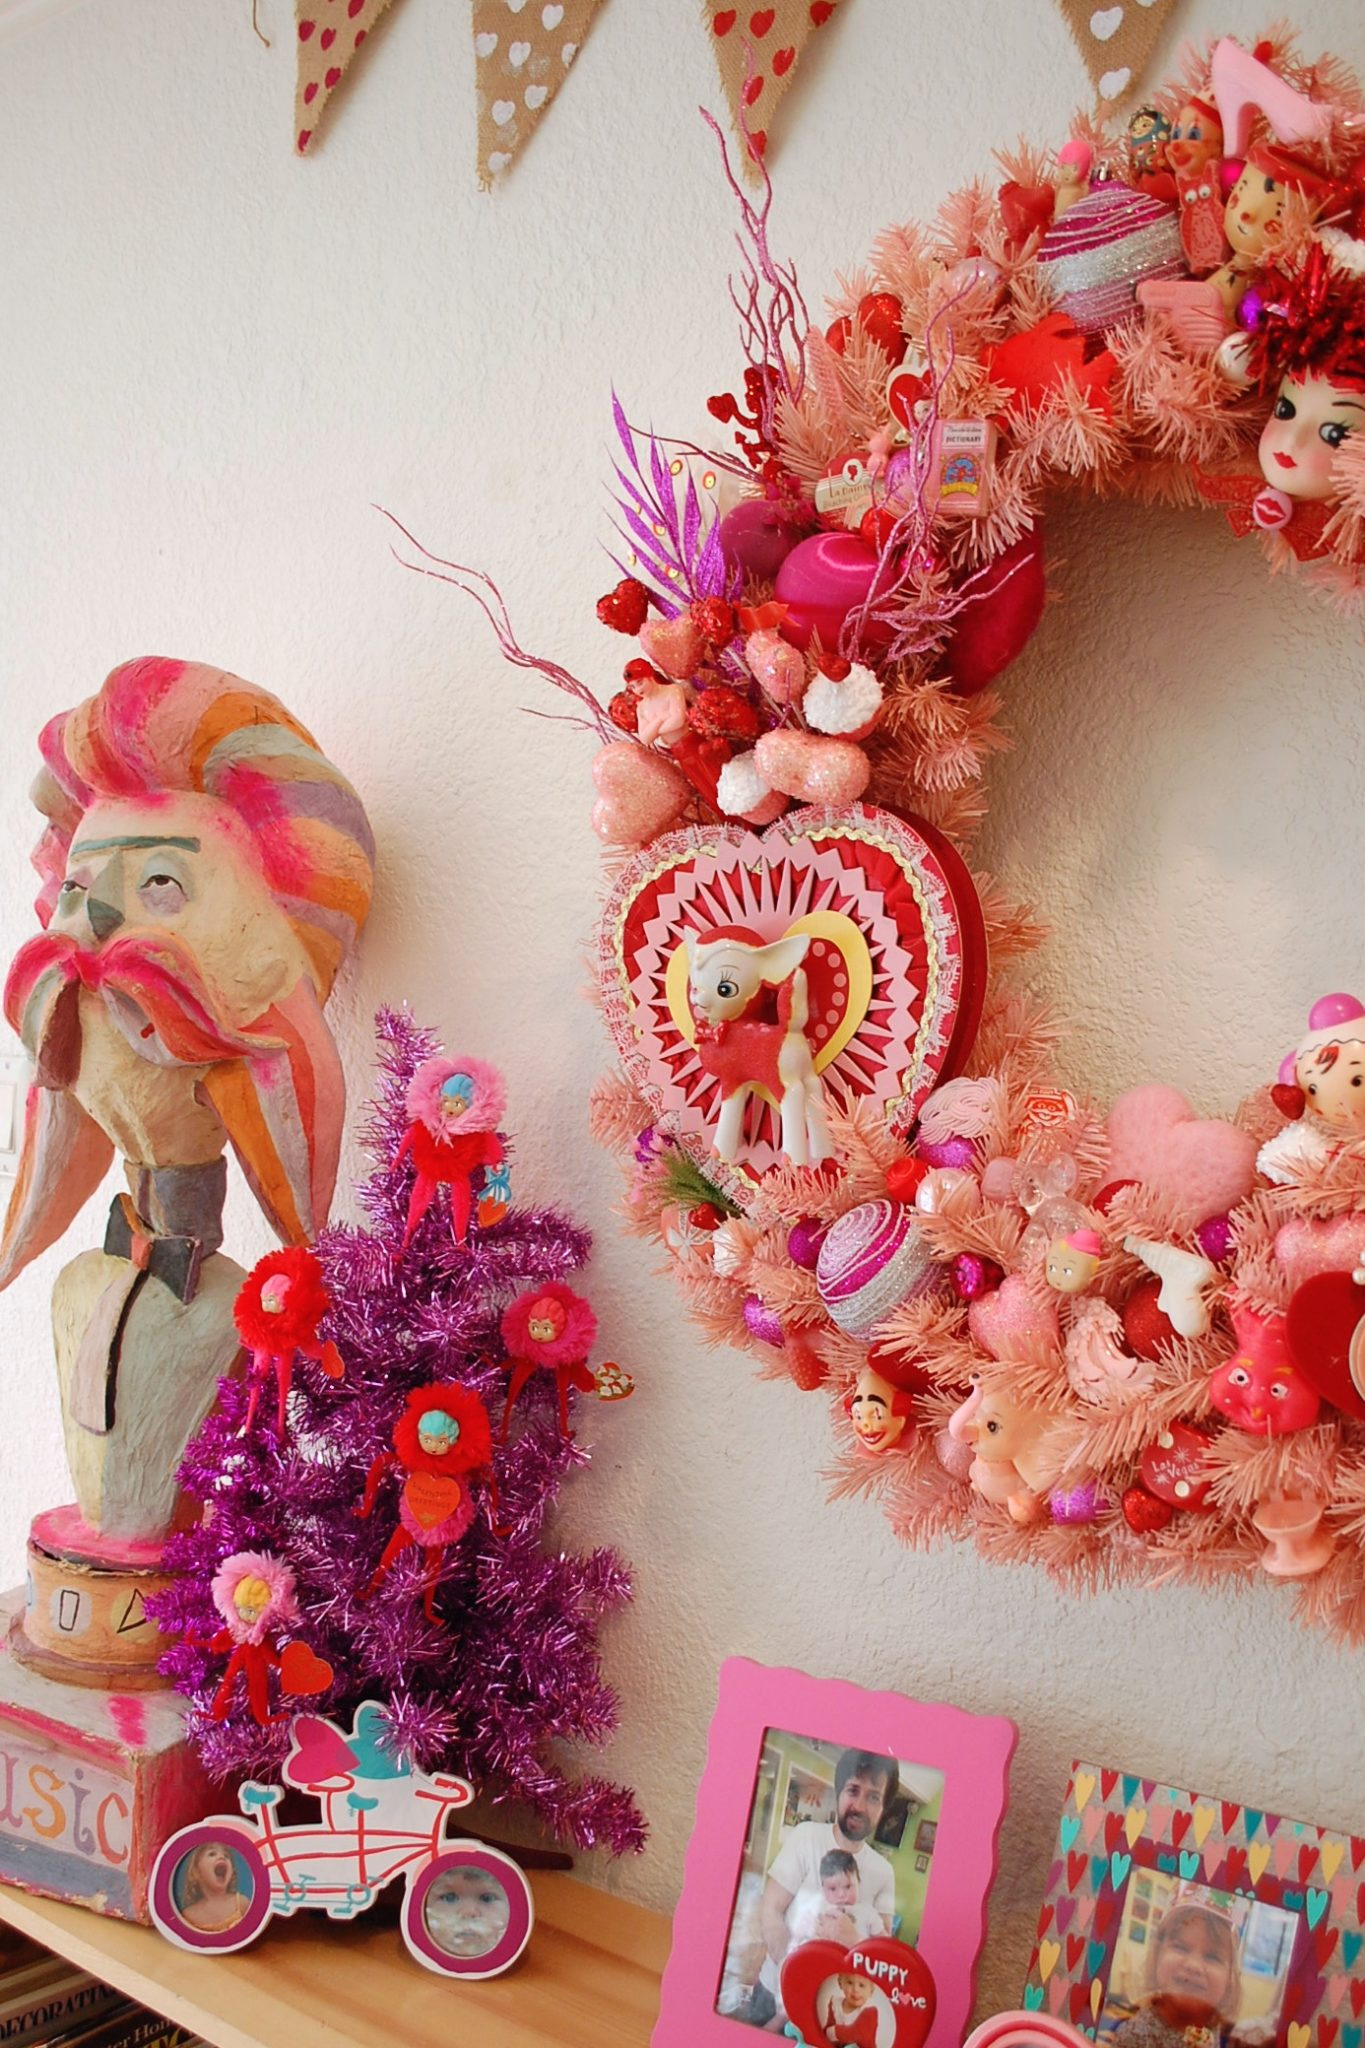 Pink Valentine's Day wreath covered in kitschy toys and trinkets by Jennifer Perkins